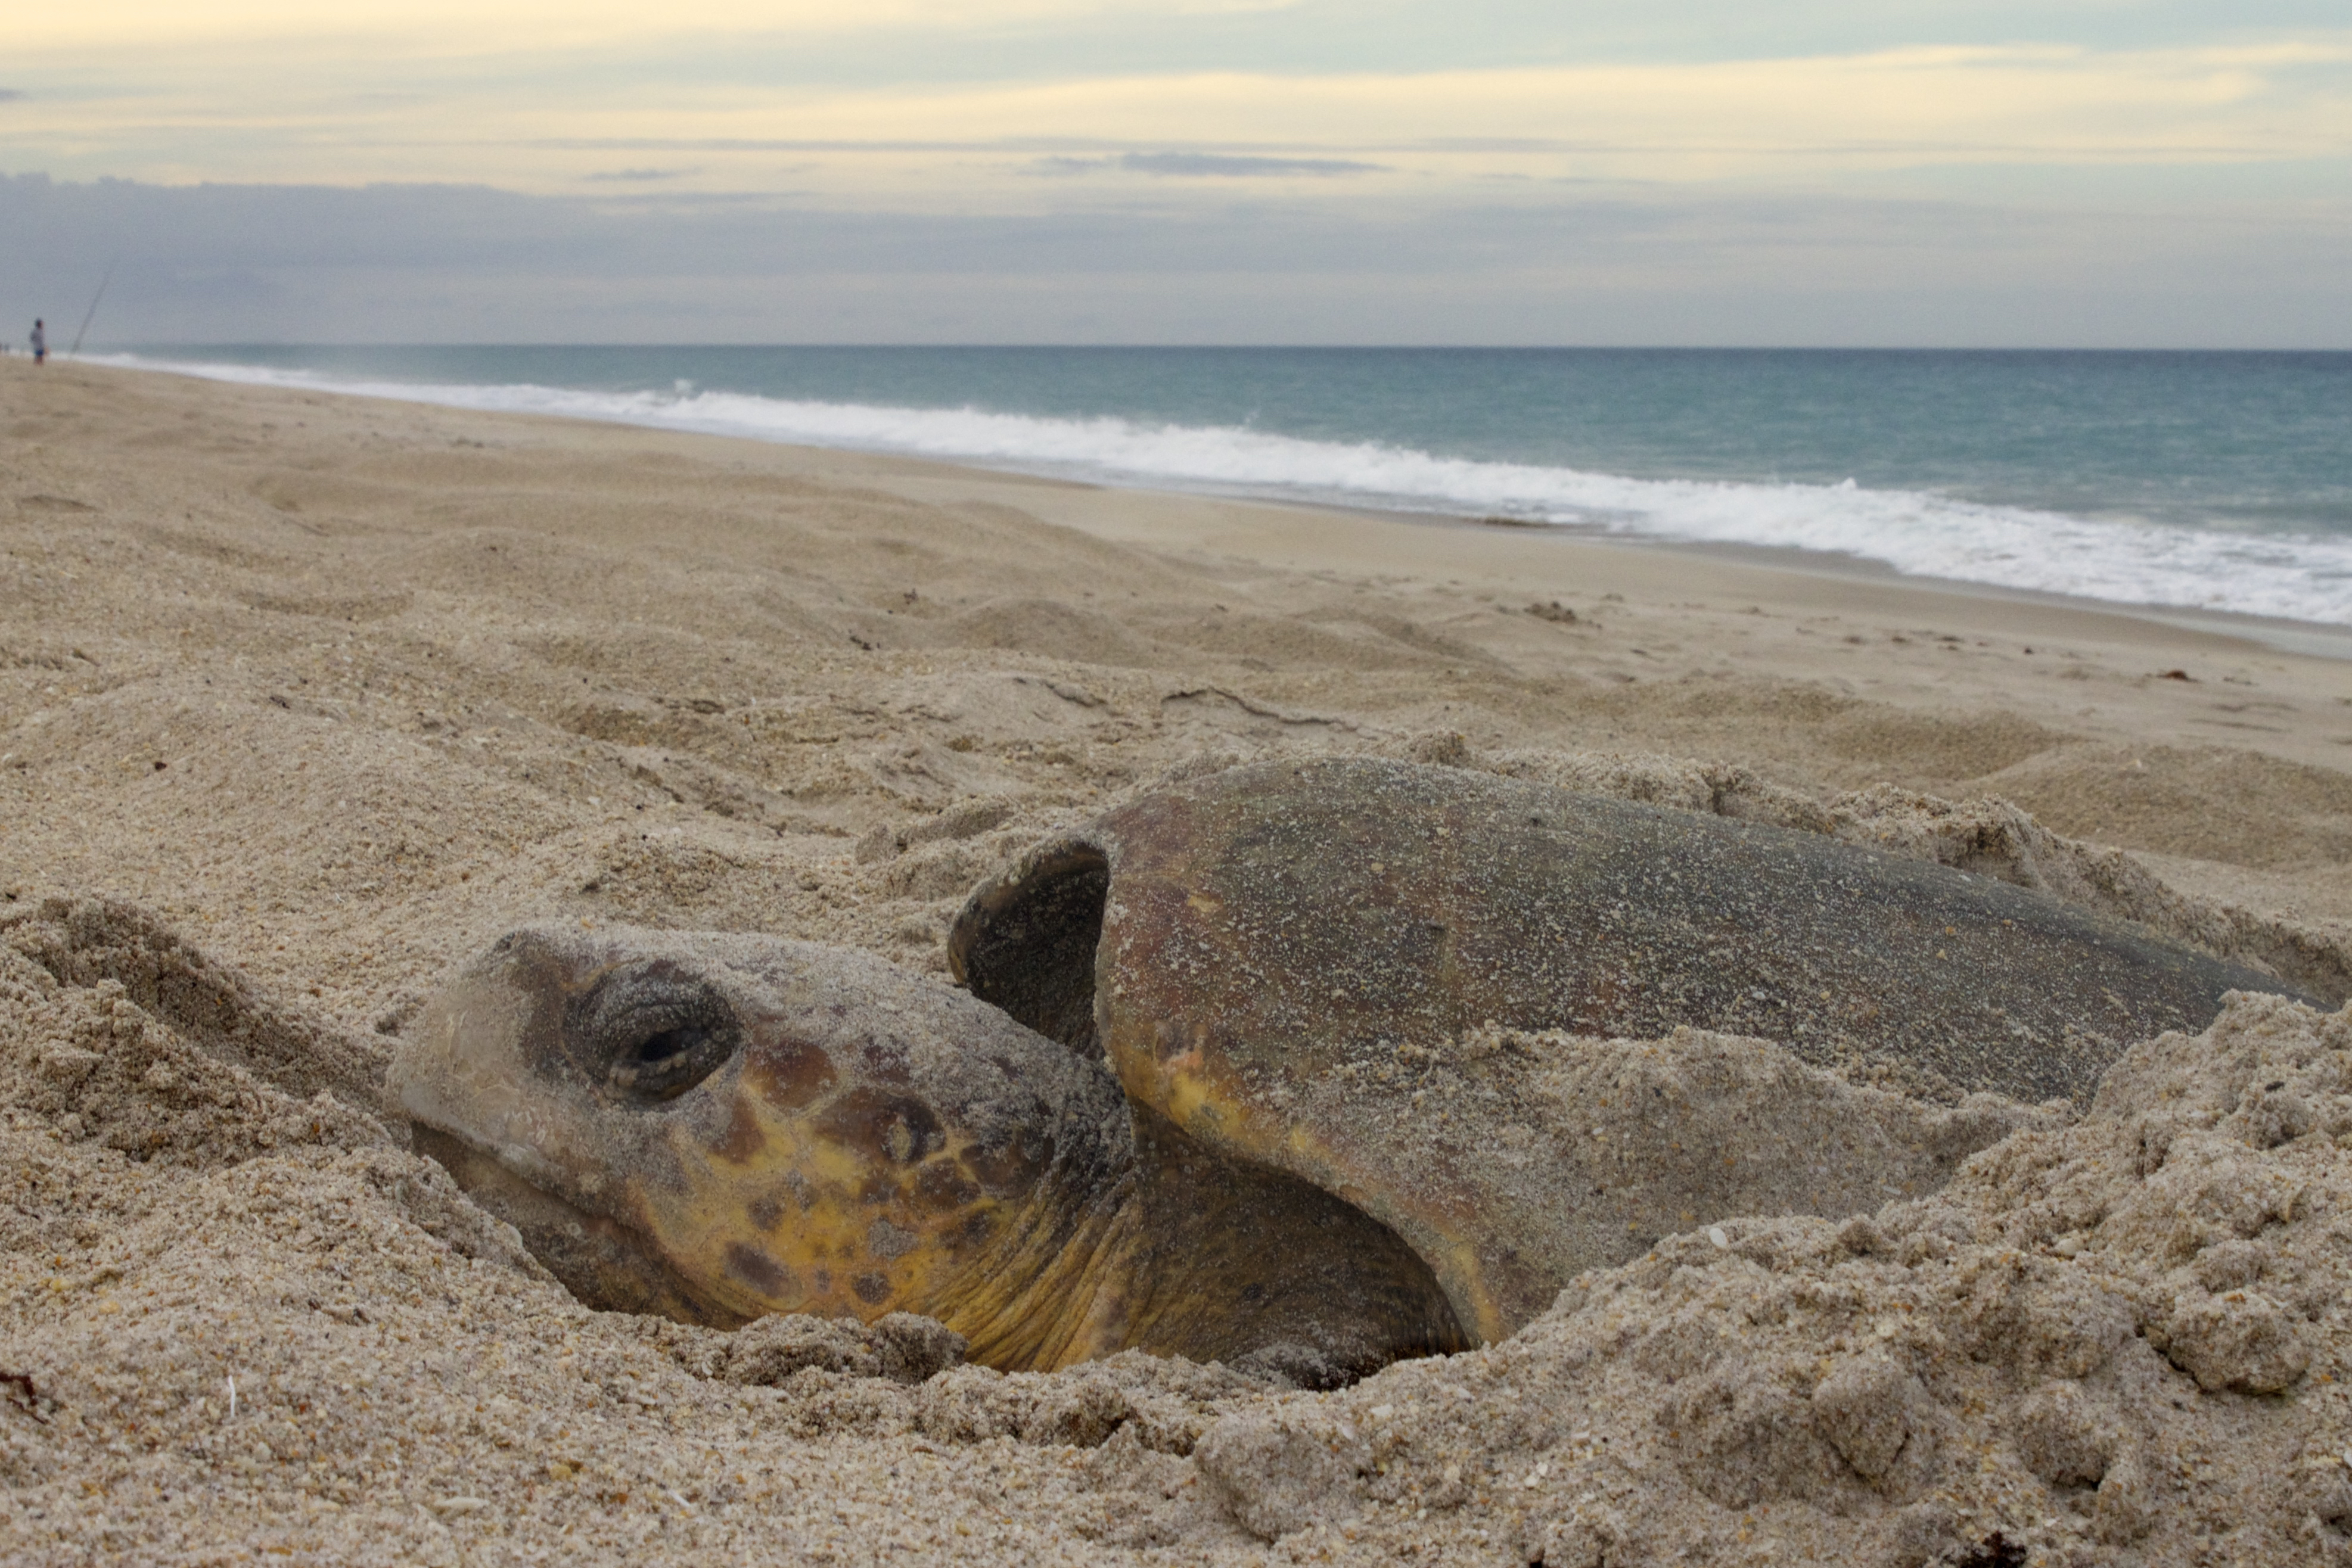 Turtles Laying Eggs On Beach In Florida